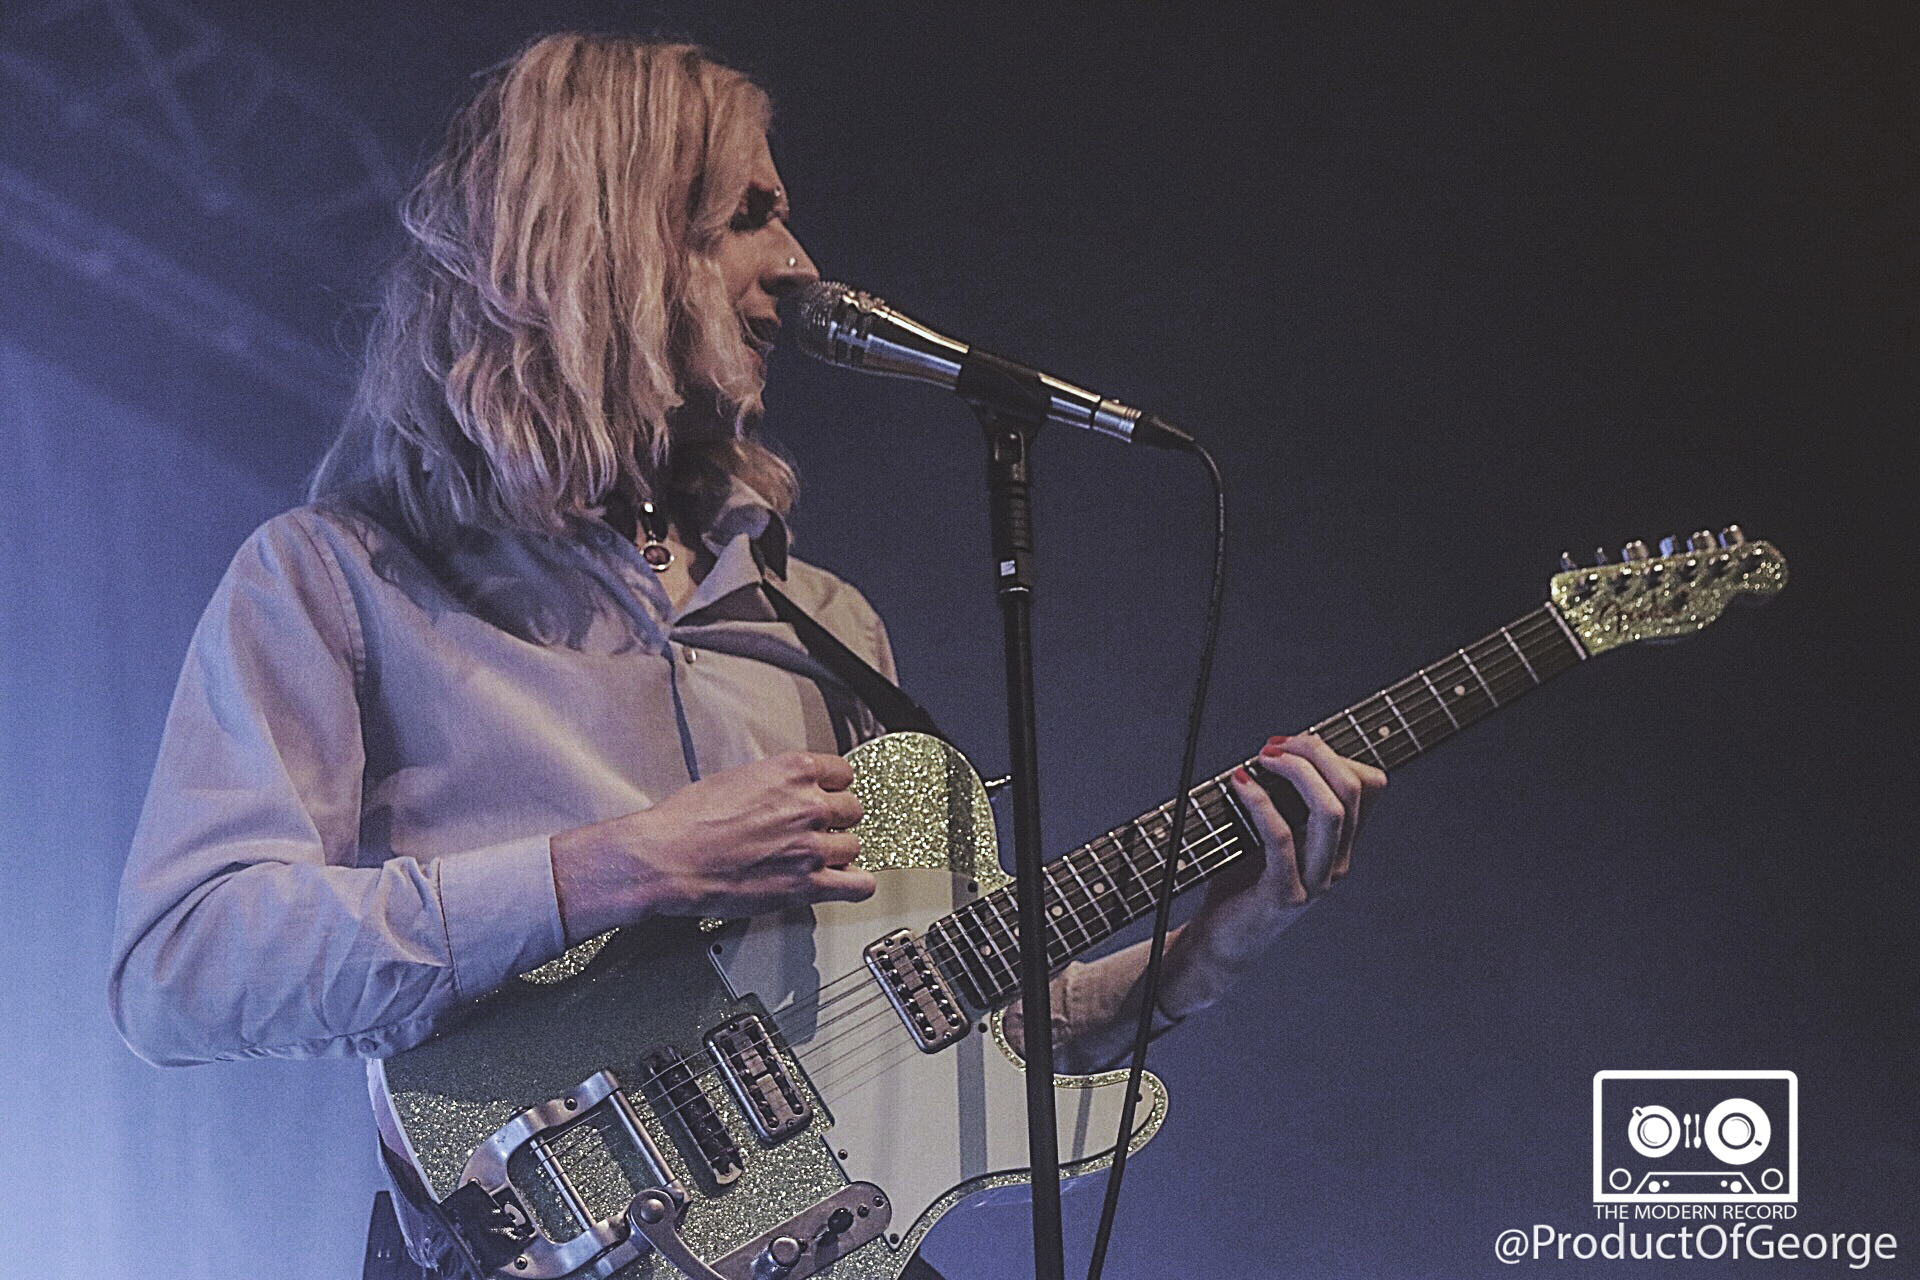 SUNDARA KARMA PERFORMING SOLD OUT SHOW AT GLASGOW'S O2 ABC - 01/10/2017  PICTURE BY@ PRODUCT OF GEORGE PHOTOGRAPHY